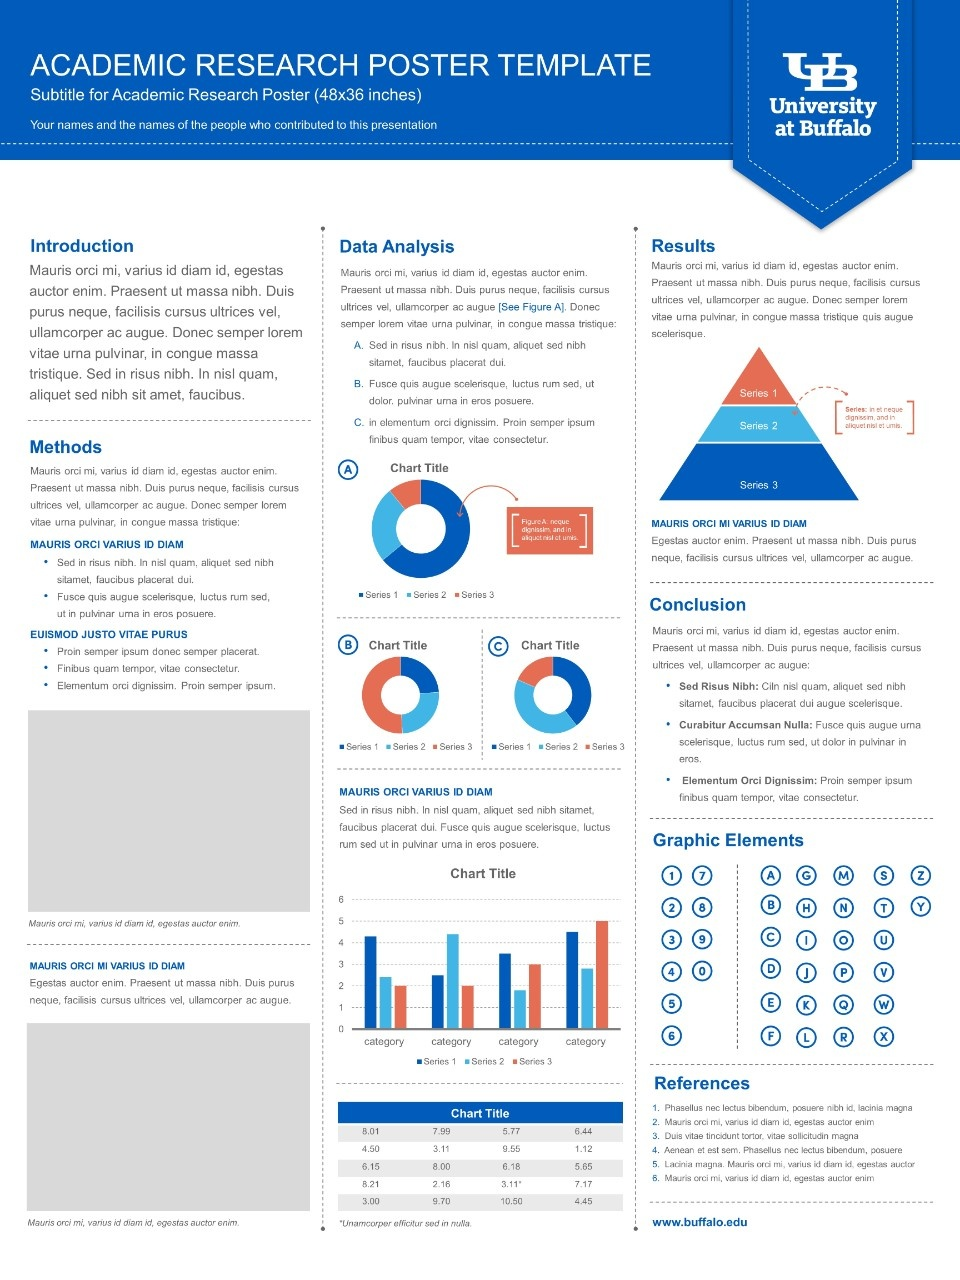 Presentation templates university at buffalo school of for Eposter template